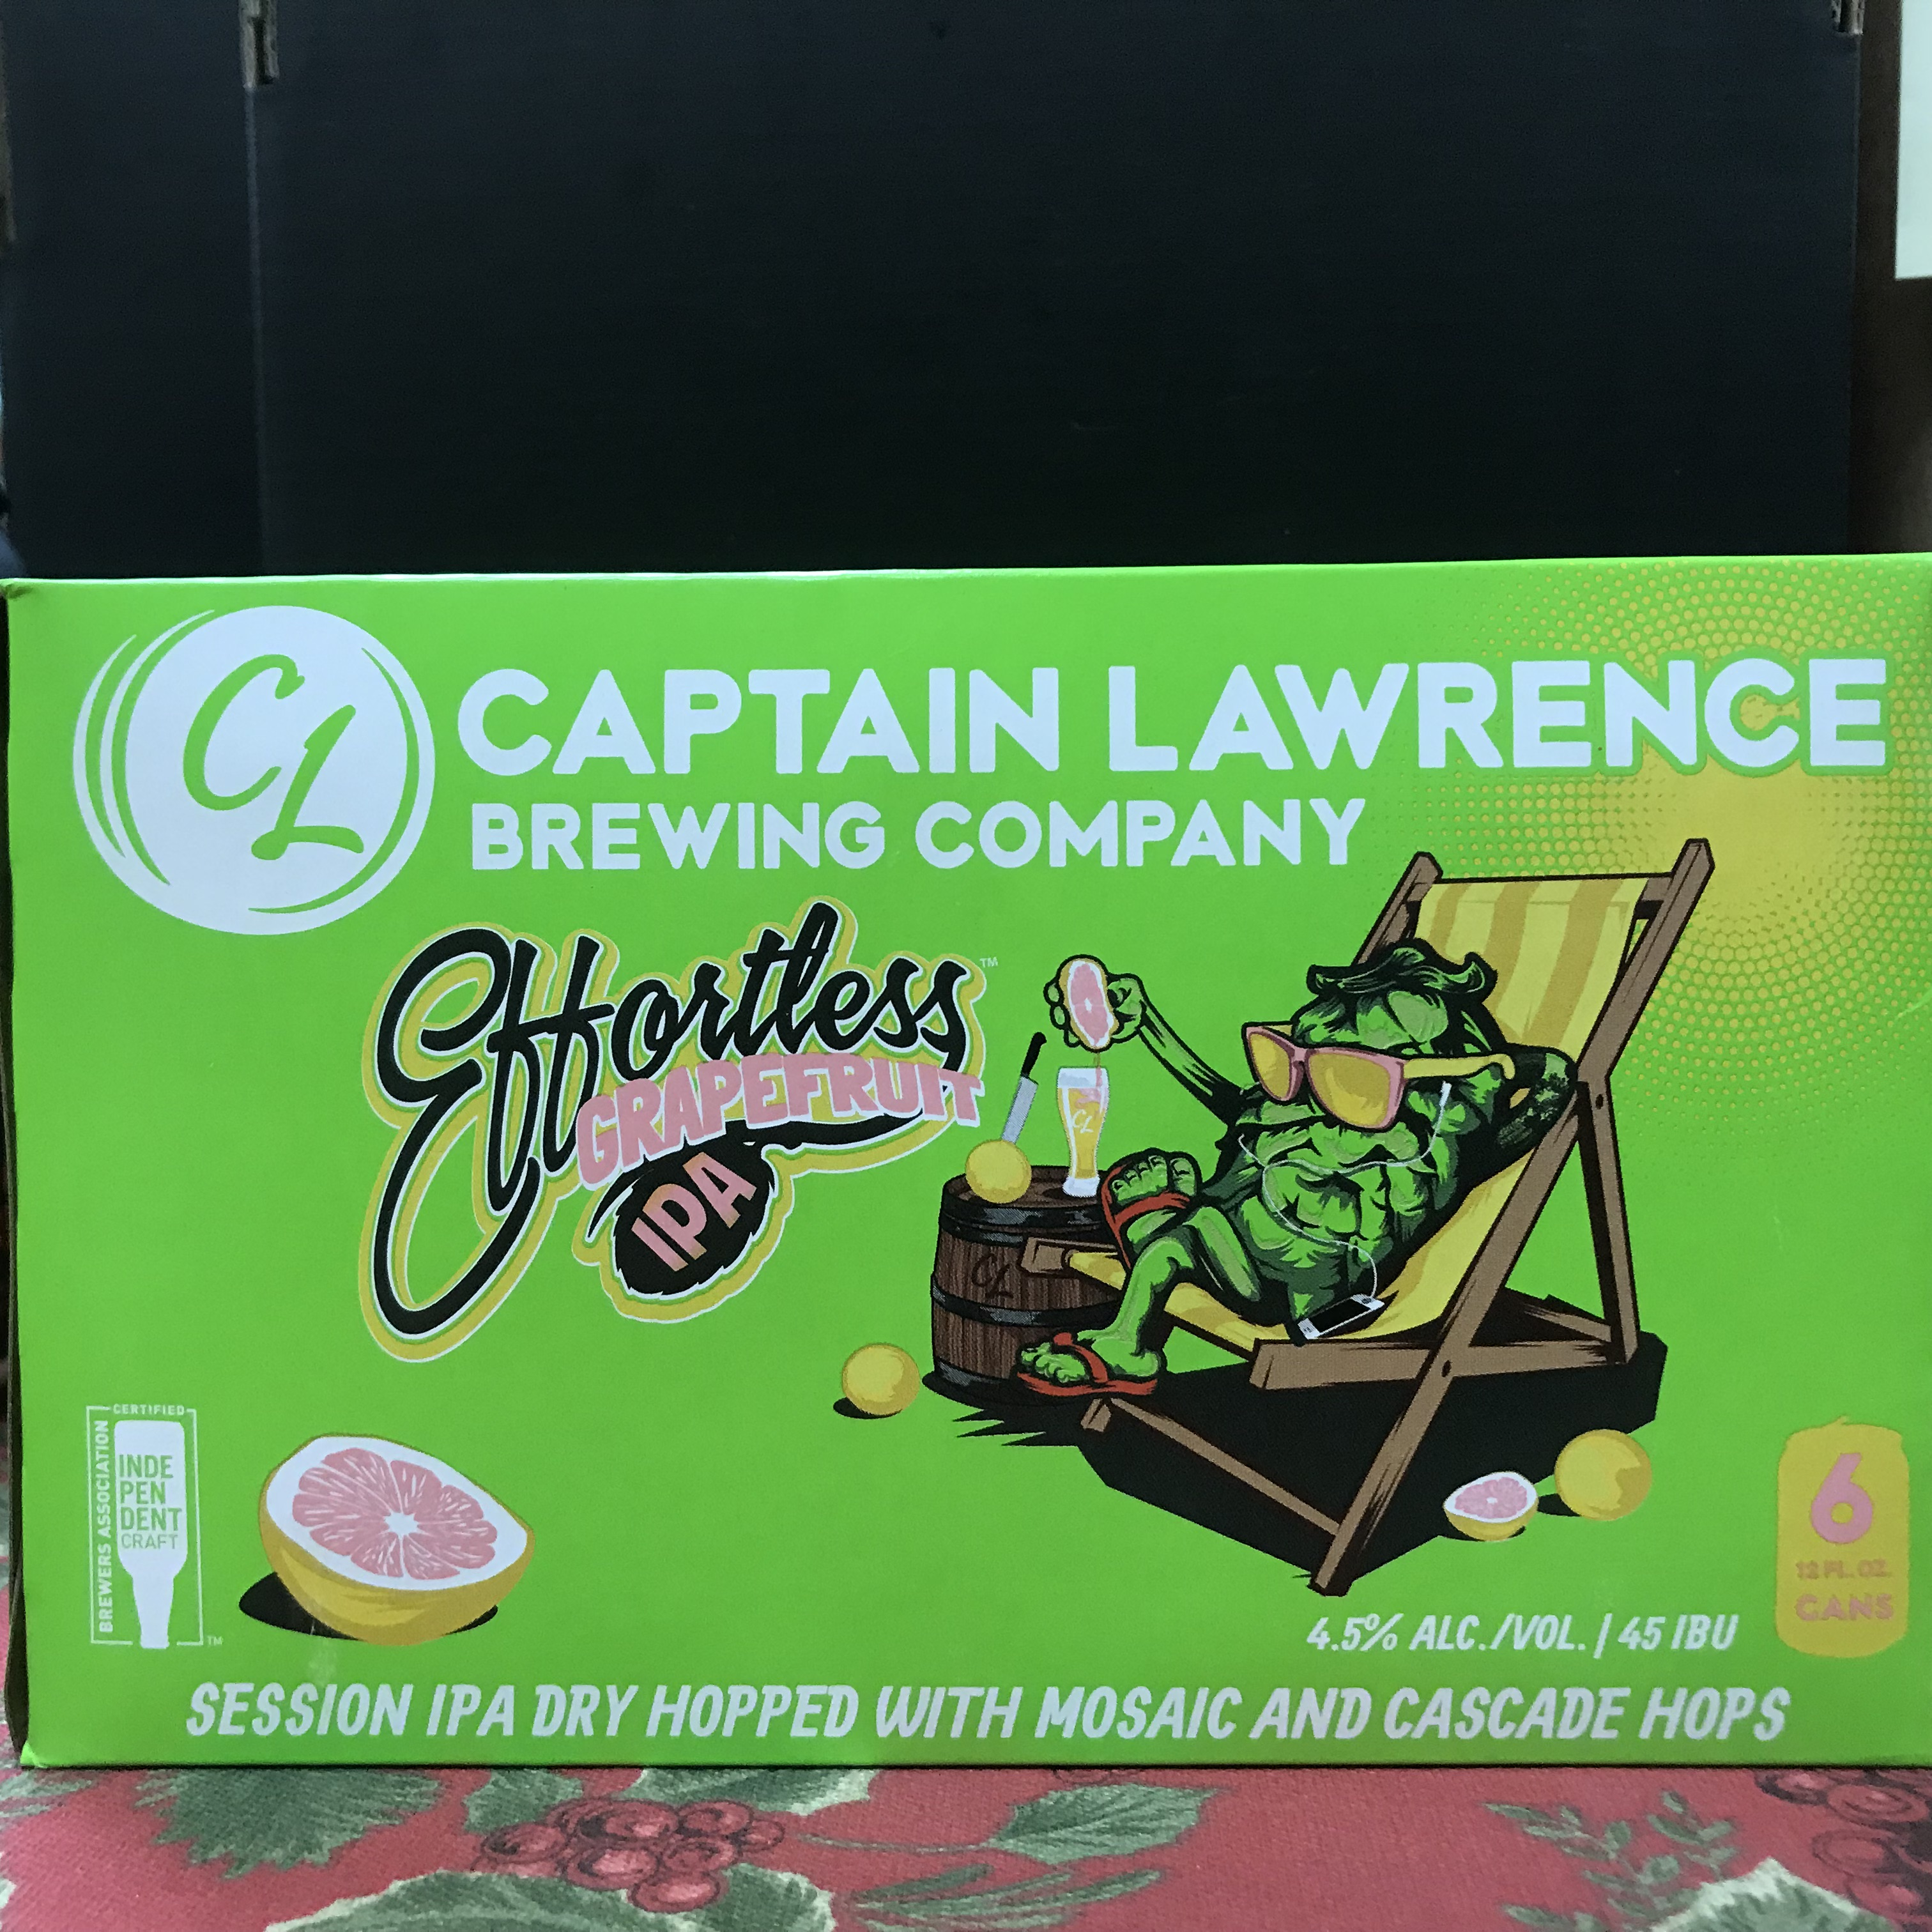 Captain Lawrence Effortless Grapefruit IPA 6 x 12 cans